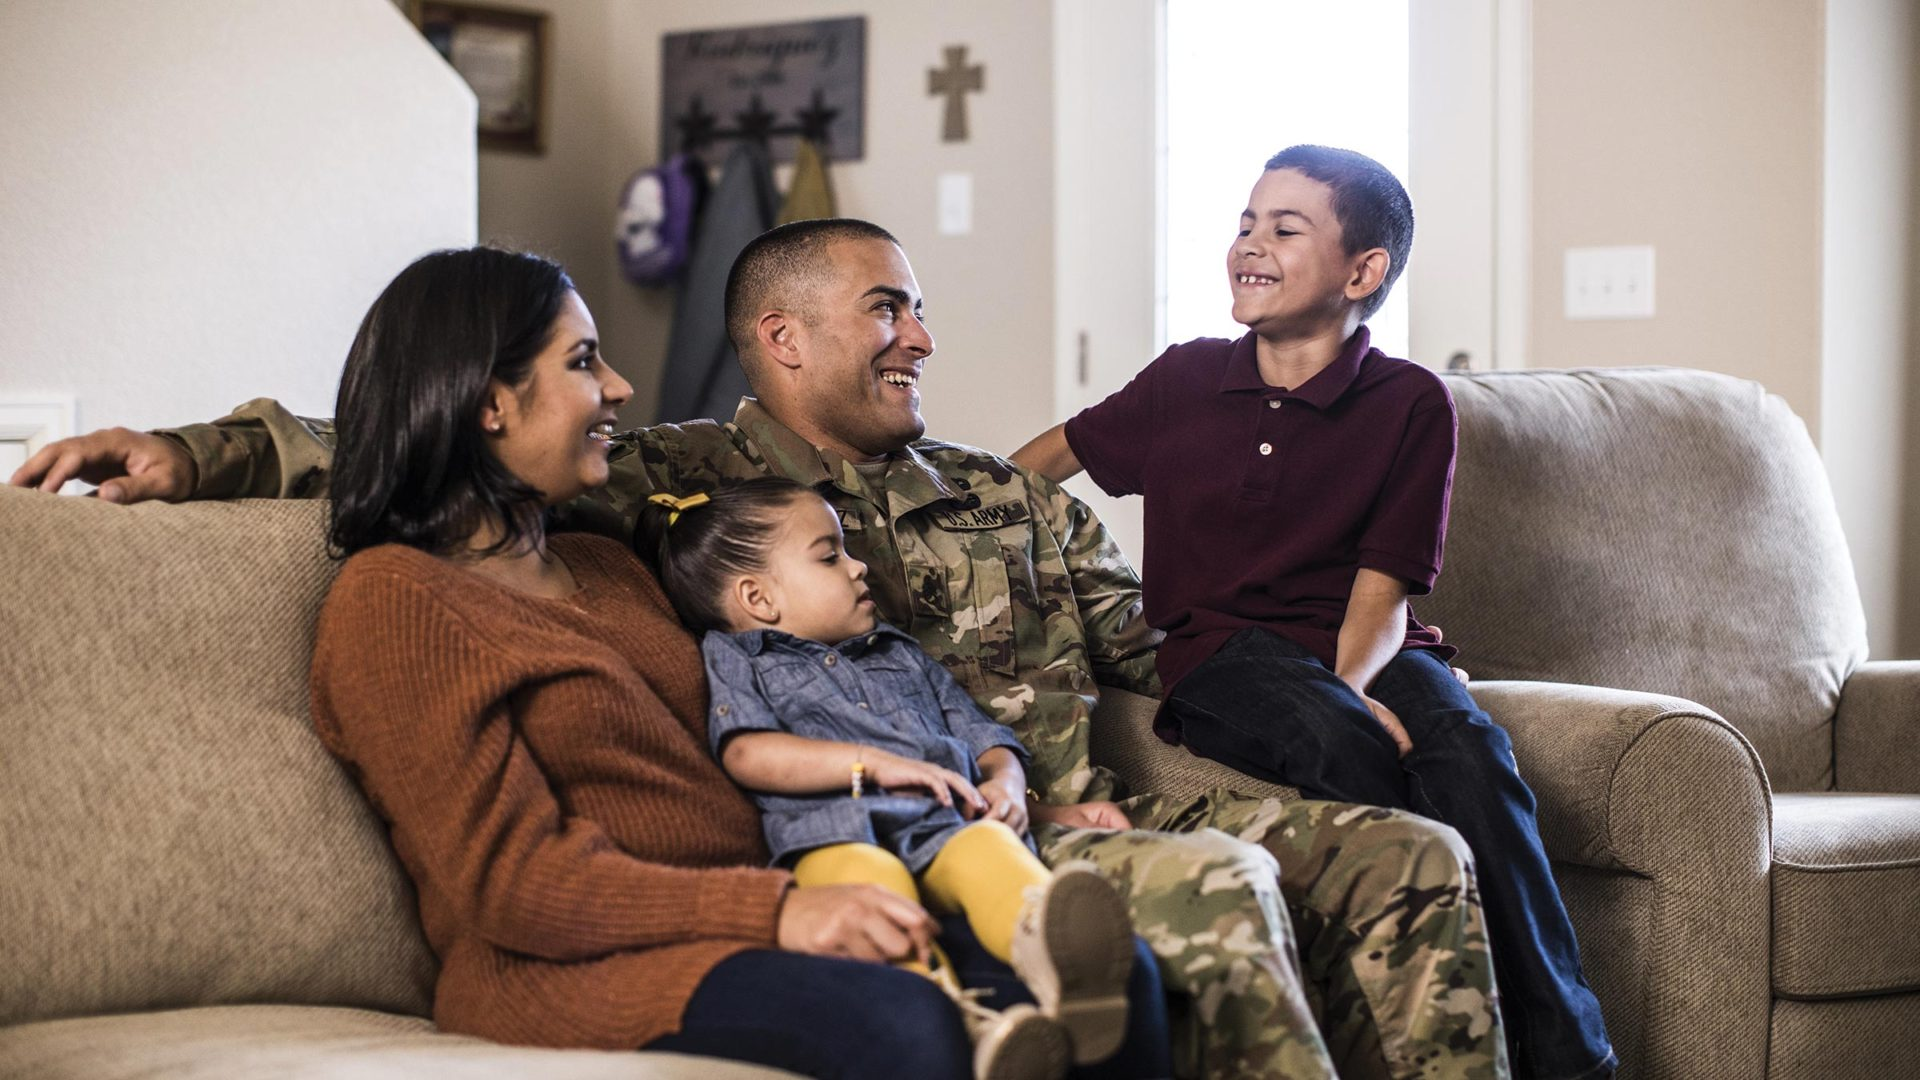 Military family sitting and laughing together at home